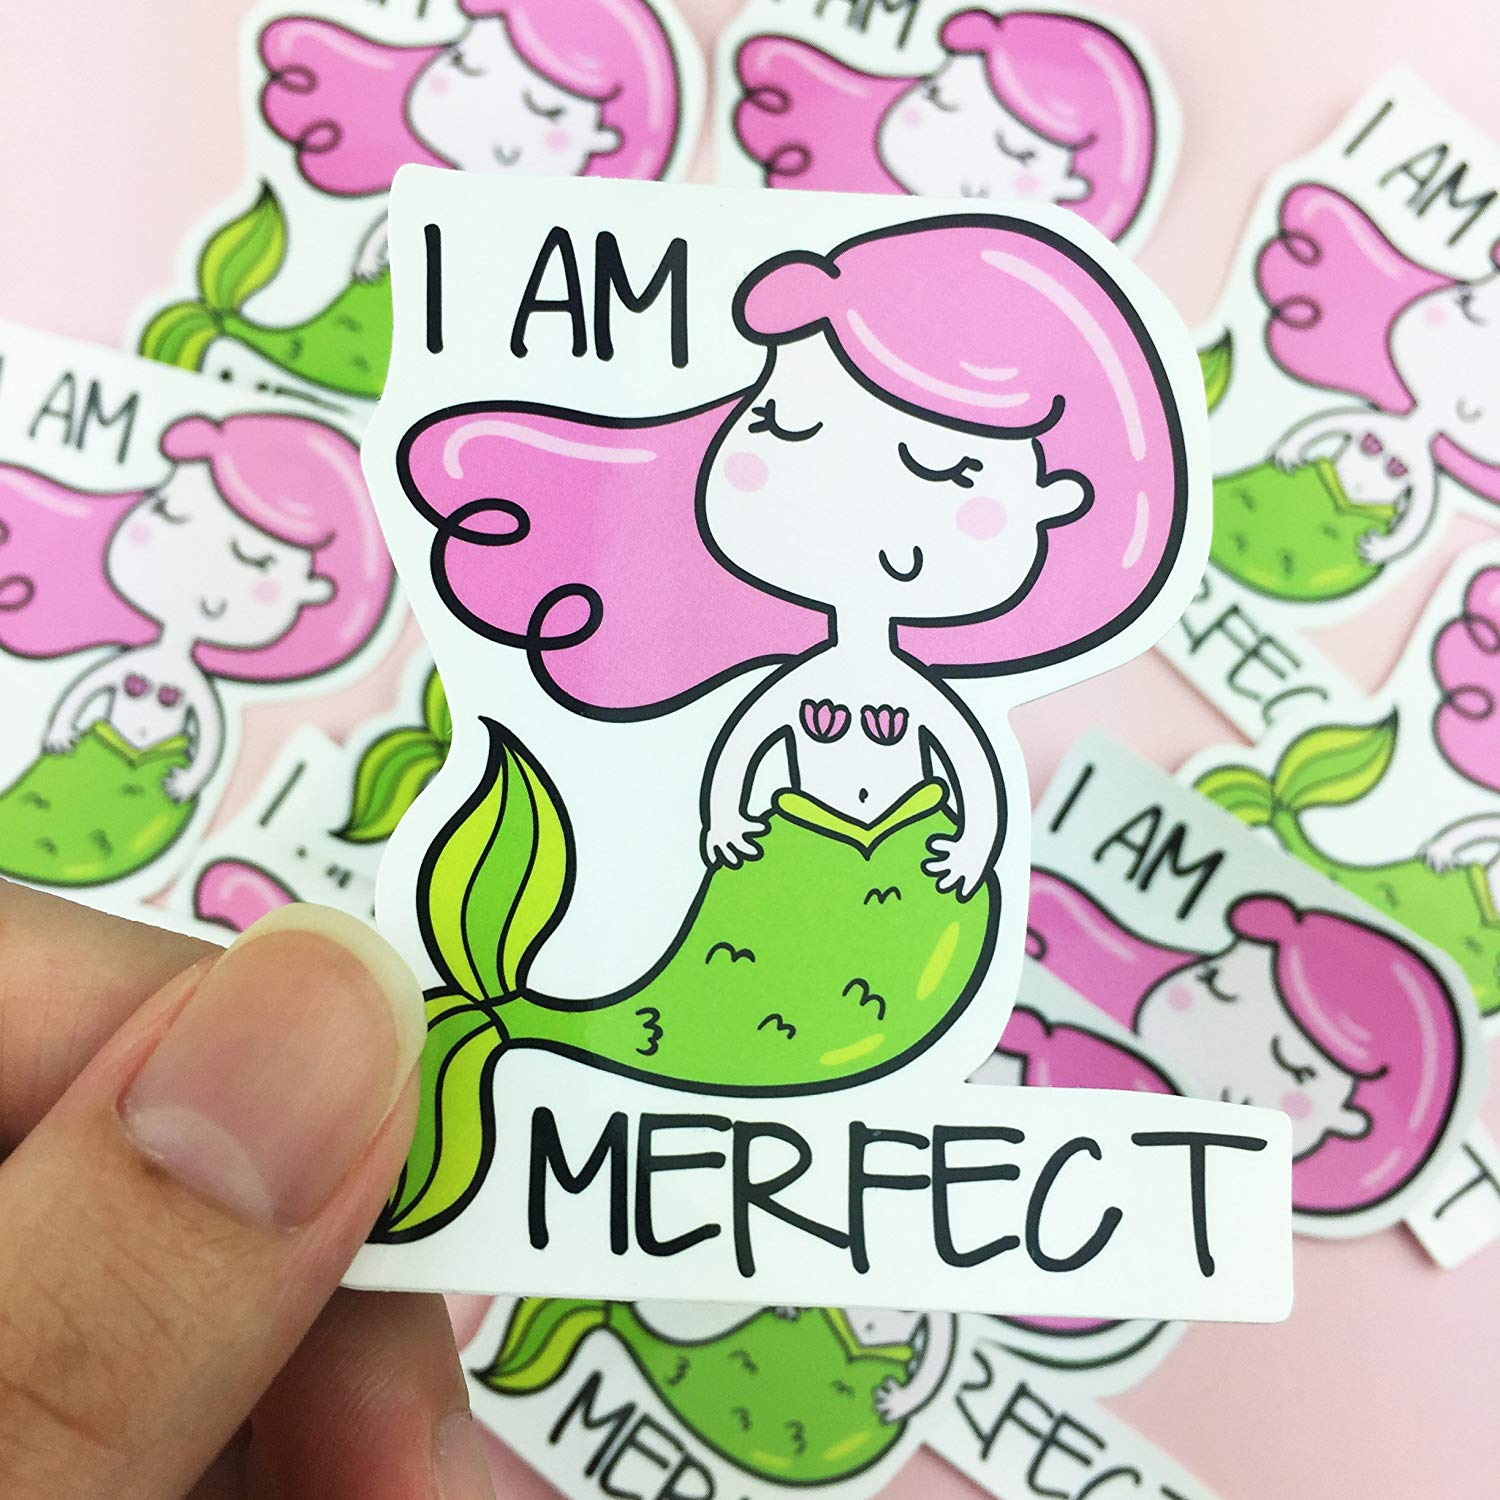 I Am Merfect Vinyl Sticker, Mermaid Sticker, Perfect , Skateboard Sticker, Decorative Stickers, Cute Sticker, Kawaii Sticker, Pretty Sticker